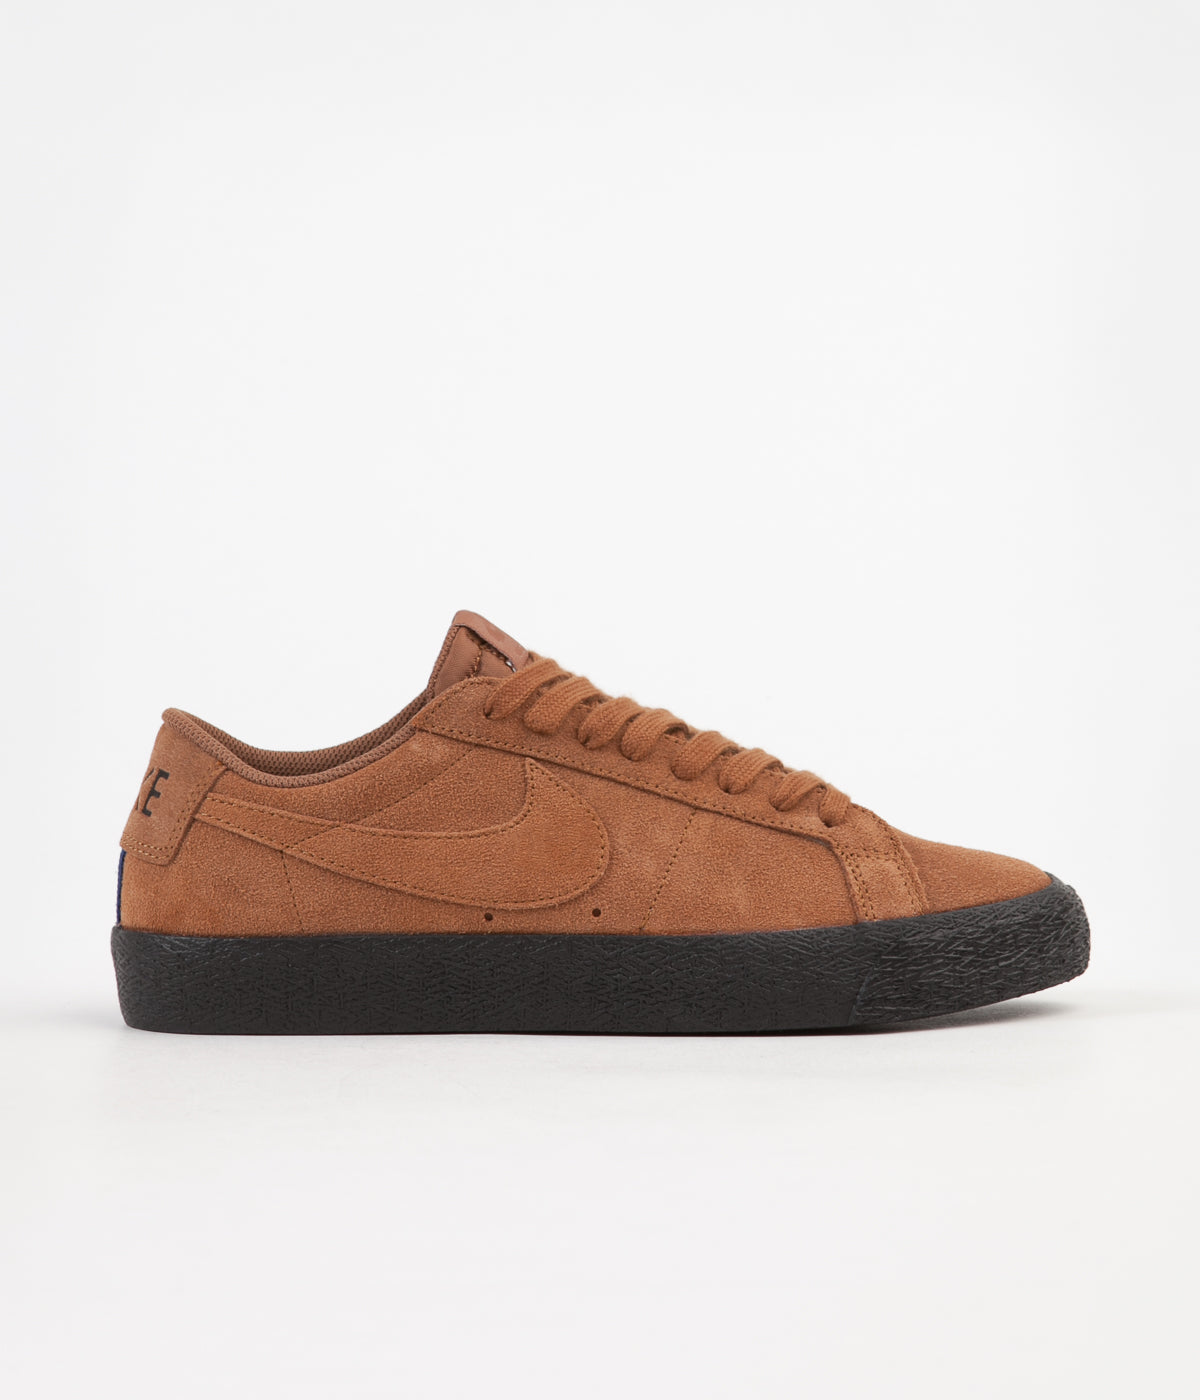 Nike SB Blazer Low Shoes - Light British Tan / Light British Tan - Black